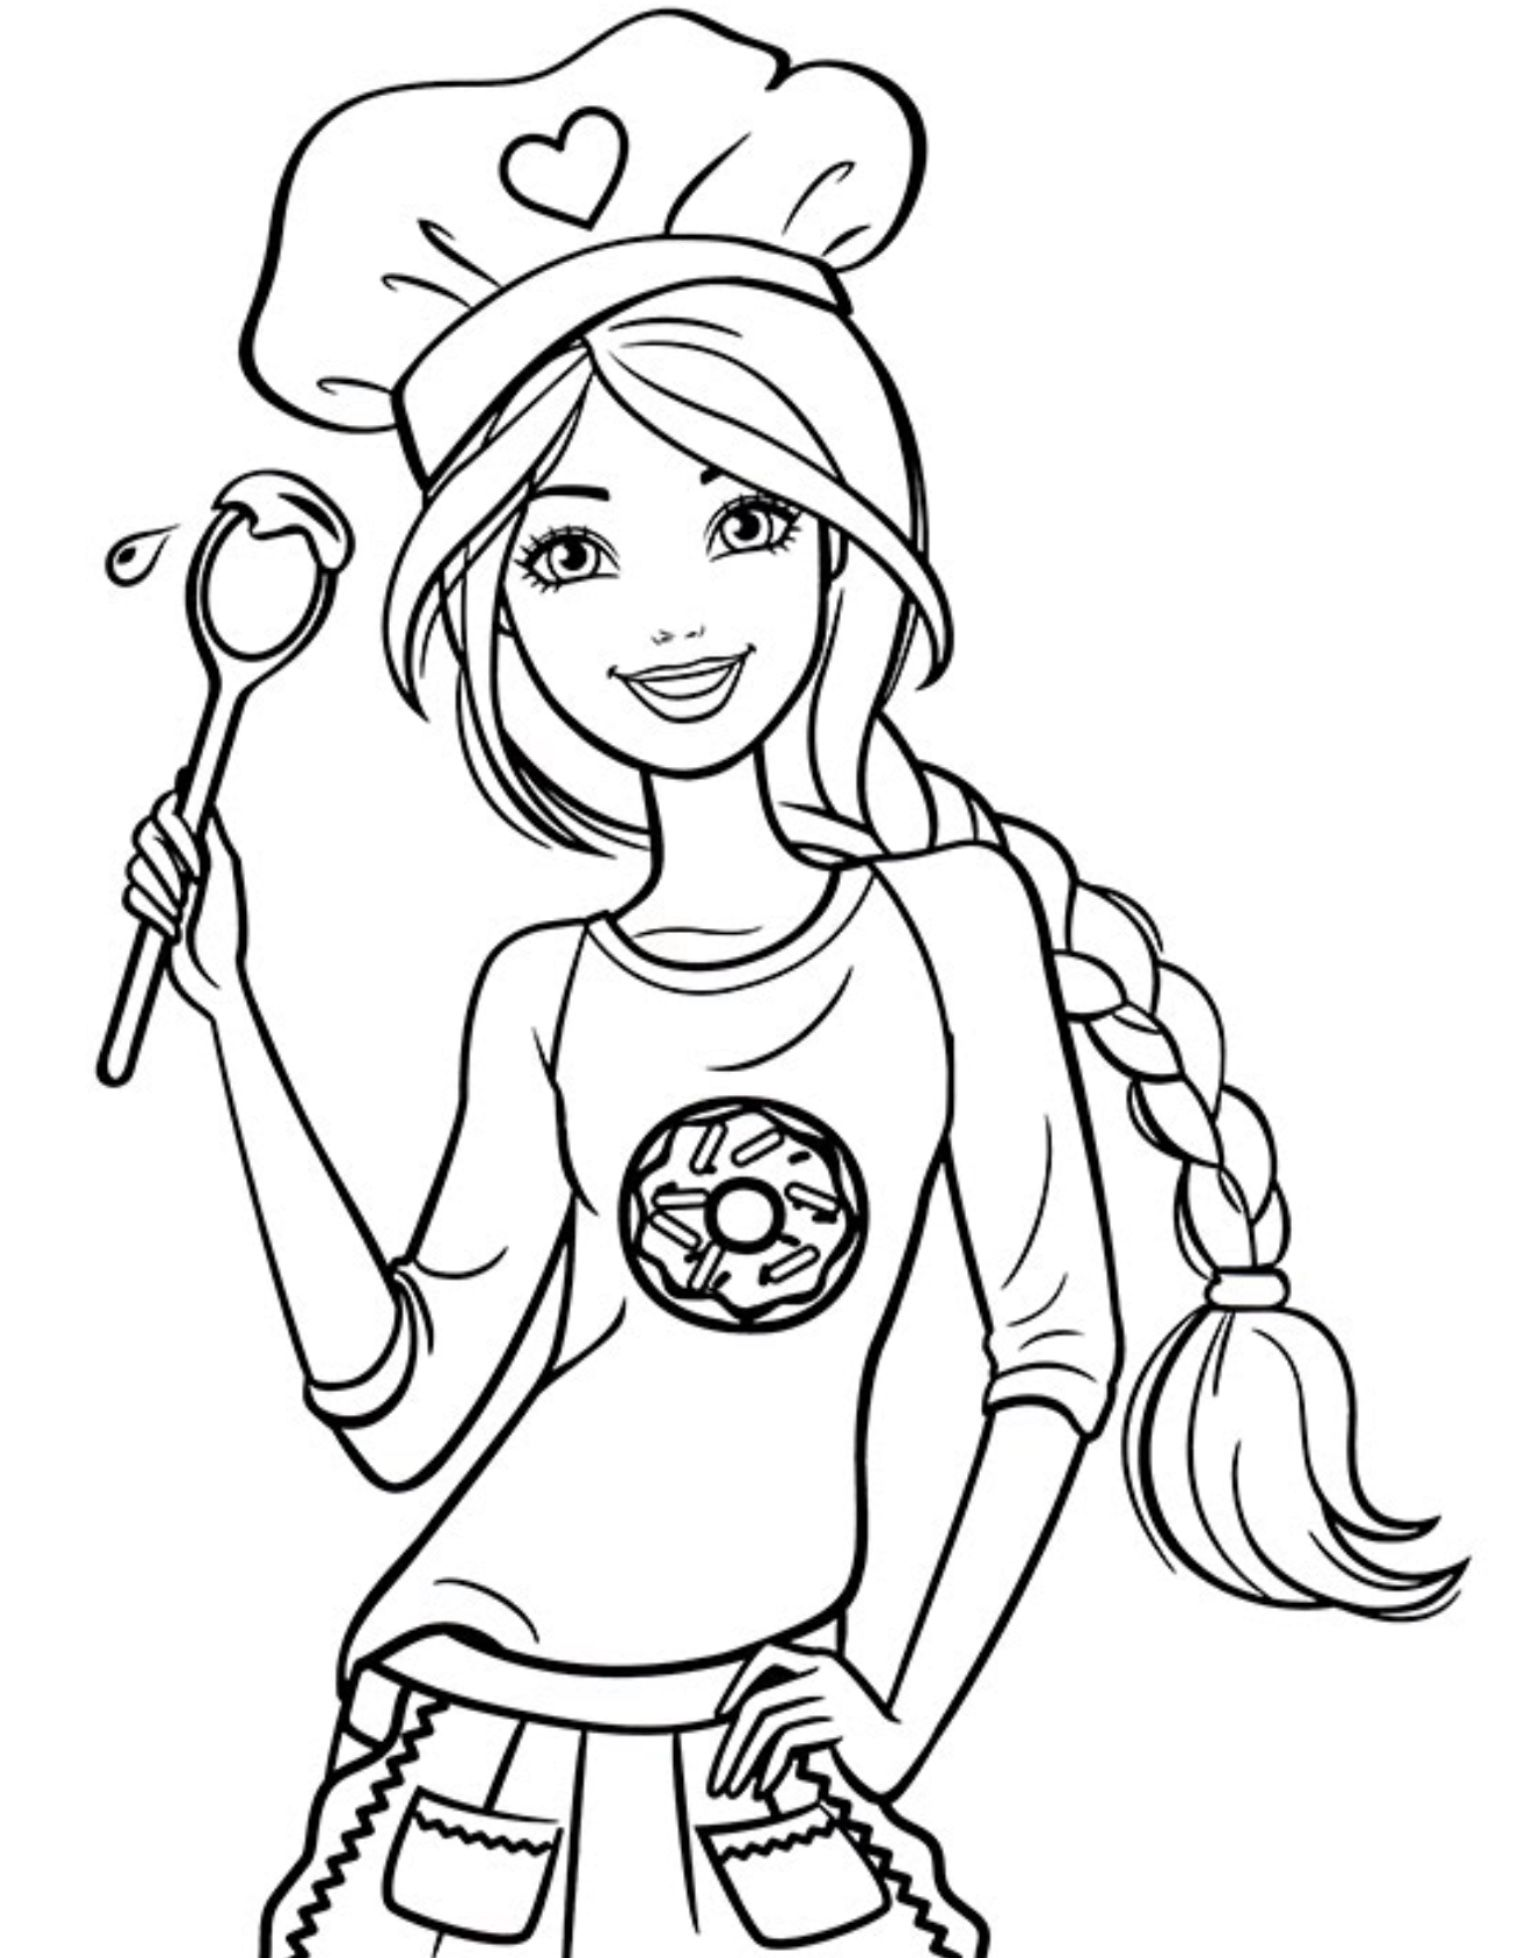 Chef Barbie Coloring Page Coloring Pages Barbie Para Colorear